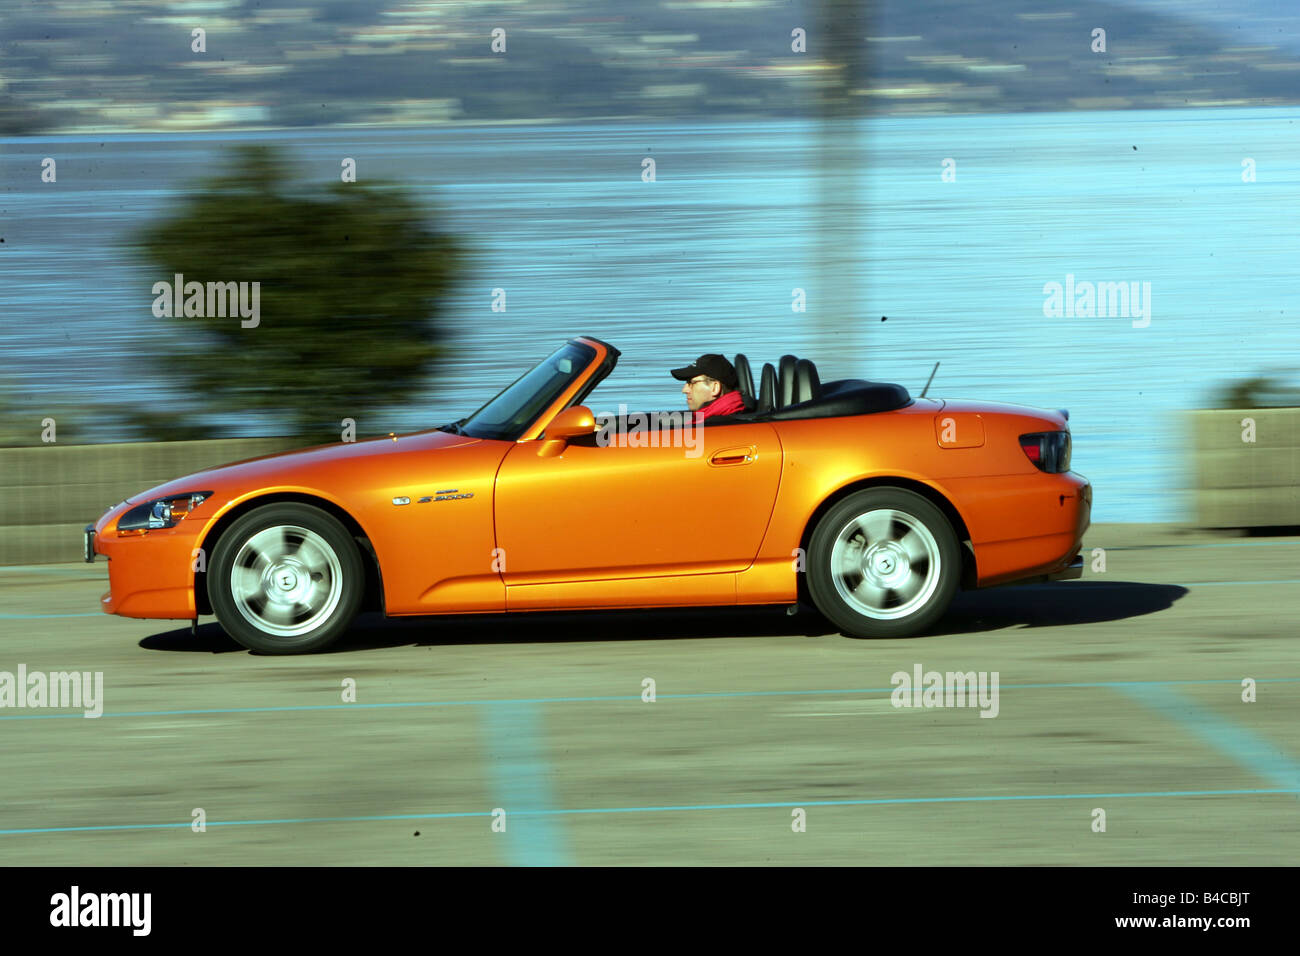 Etonnant Car, Honda S 2000, Model Year 2005 , Orange , Convertible, Driving